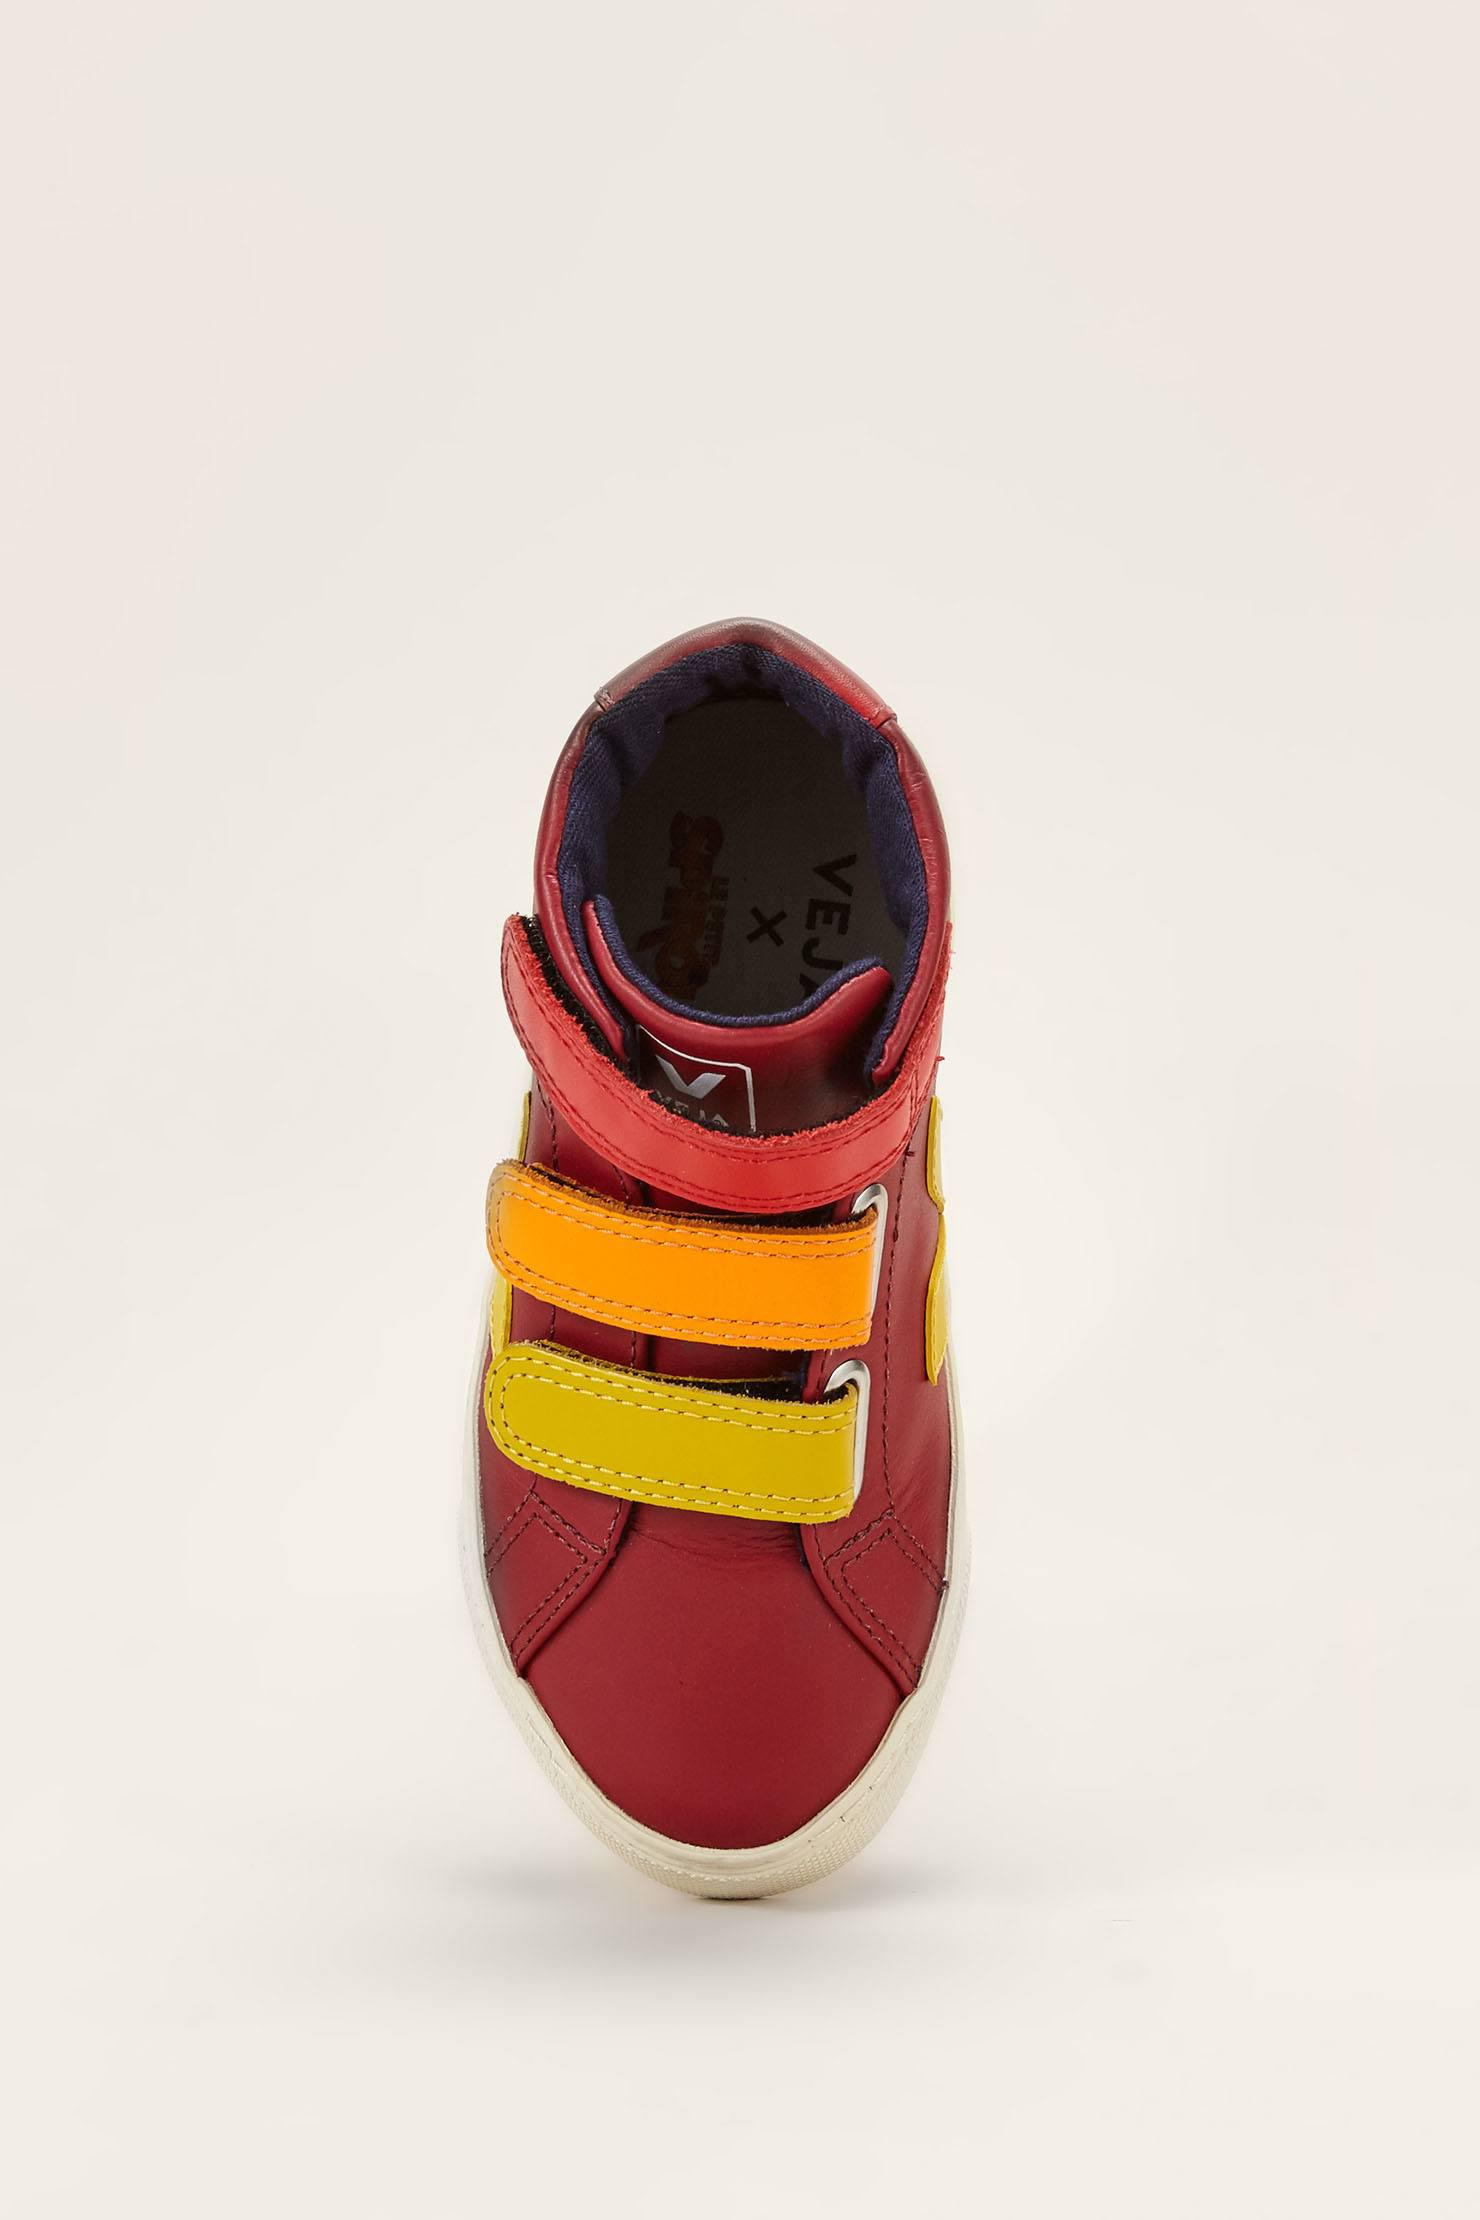 Lyst Veja Boy Shoe in Red for Men